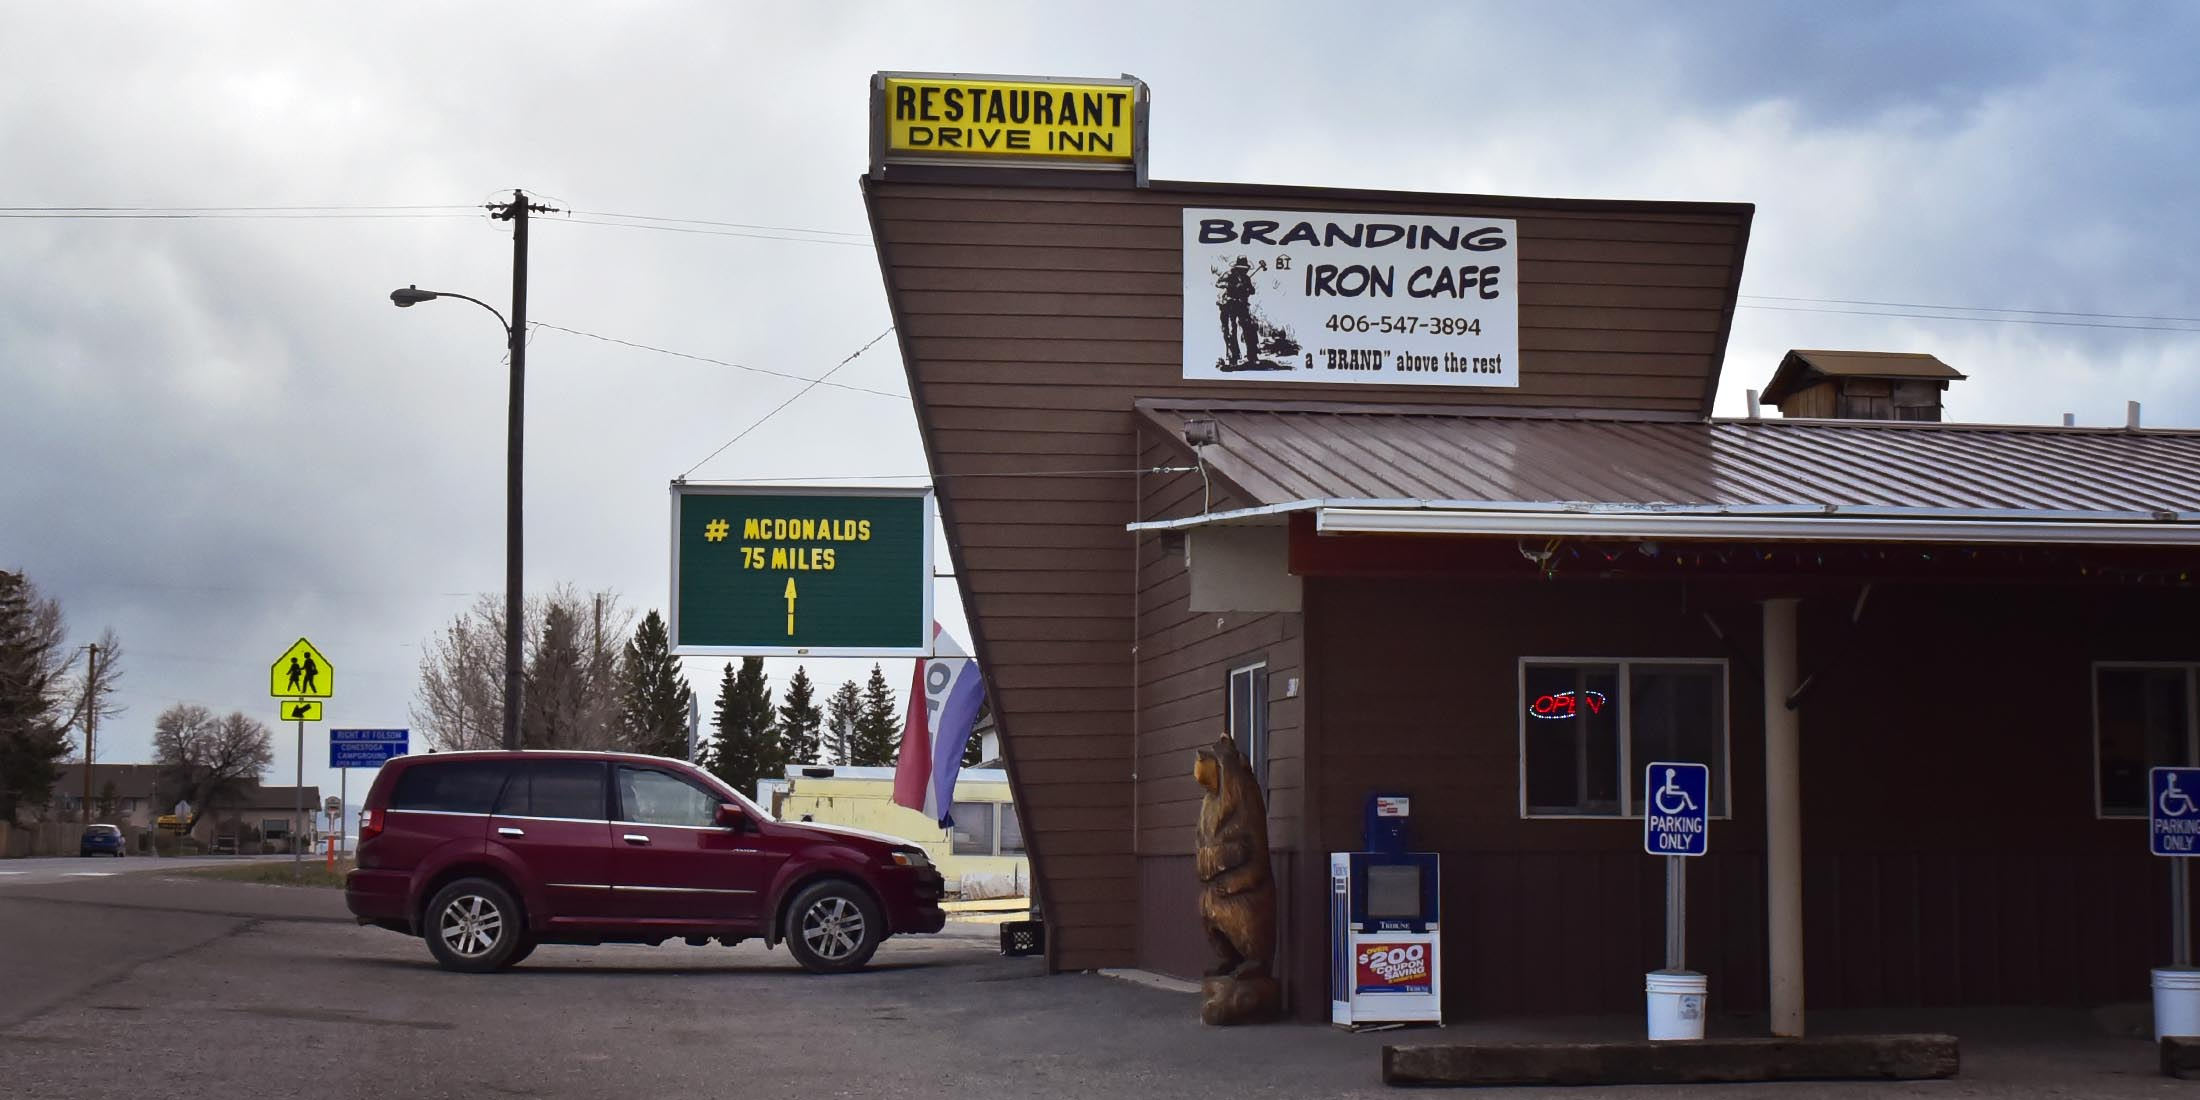 Located near downtown White Sulphur Springs, Montana on Highway 89 in the Little Belt Mountain Range located in Meagher County.